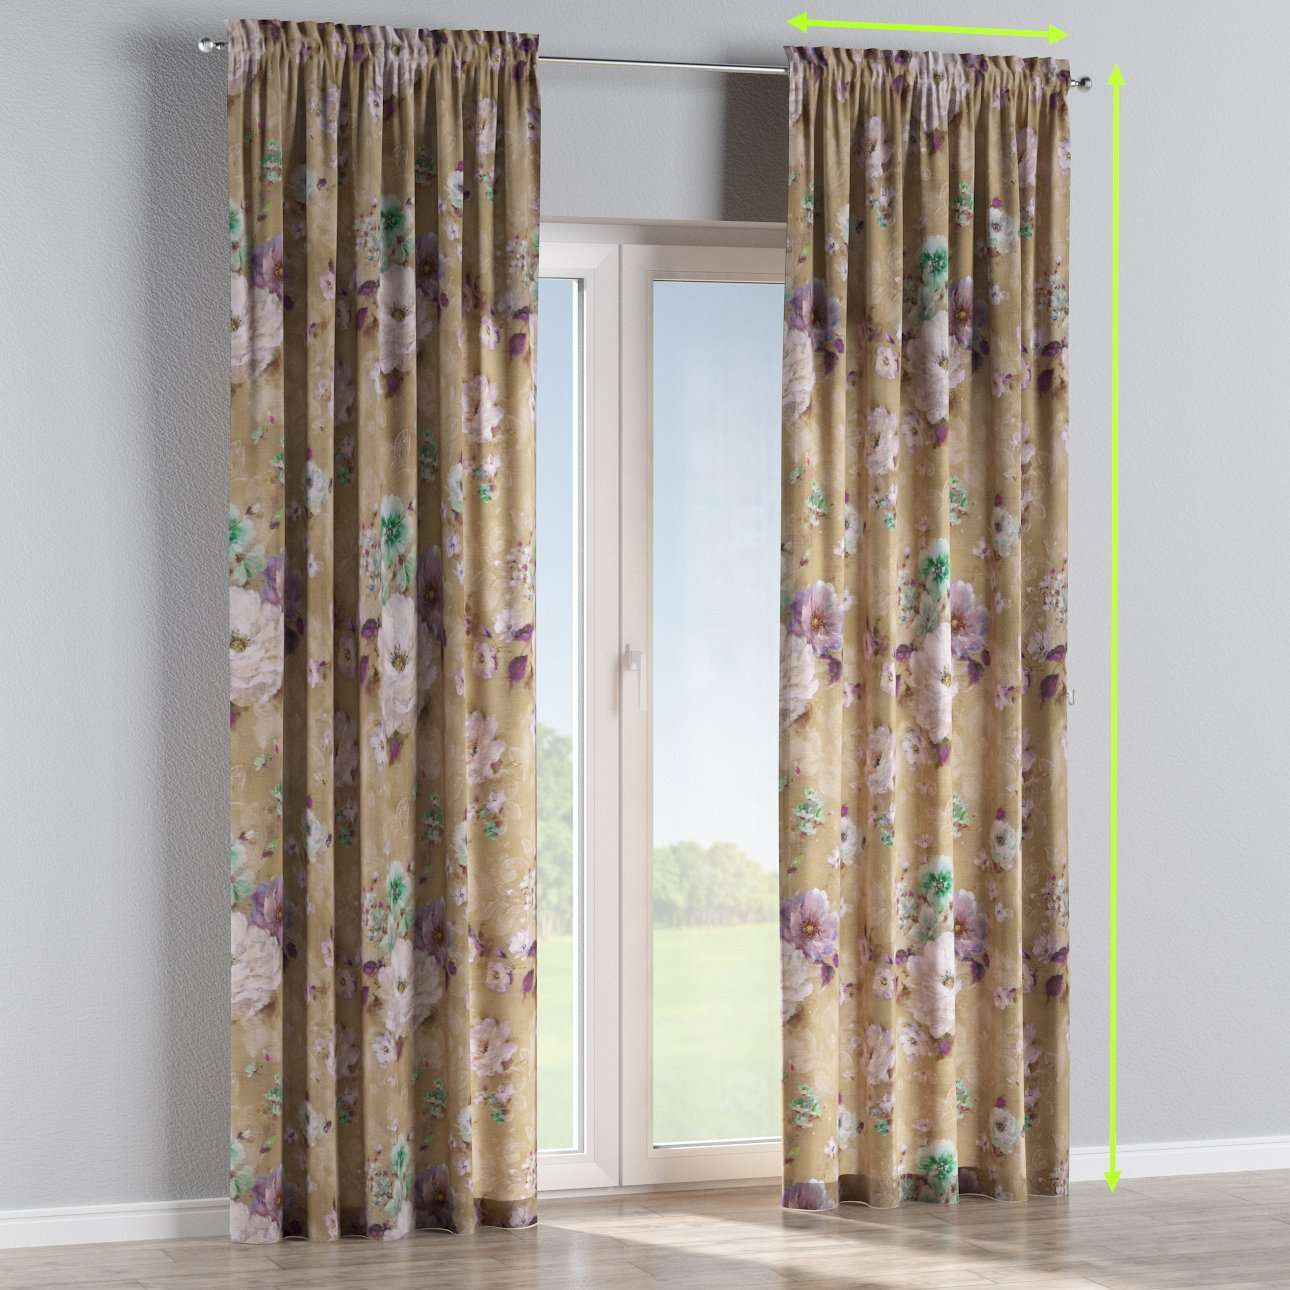 Slot and frill curtains in collection Monet, fabric: 137-82